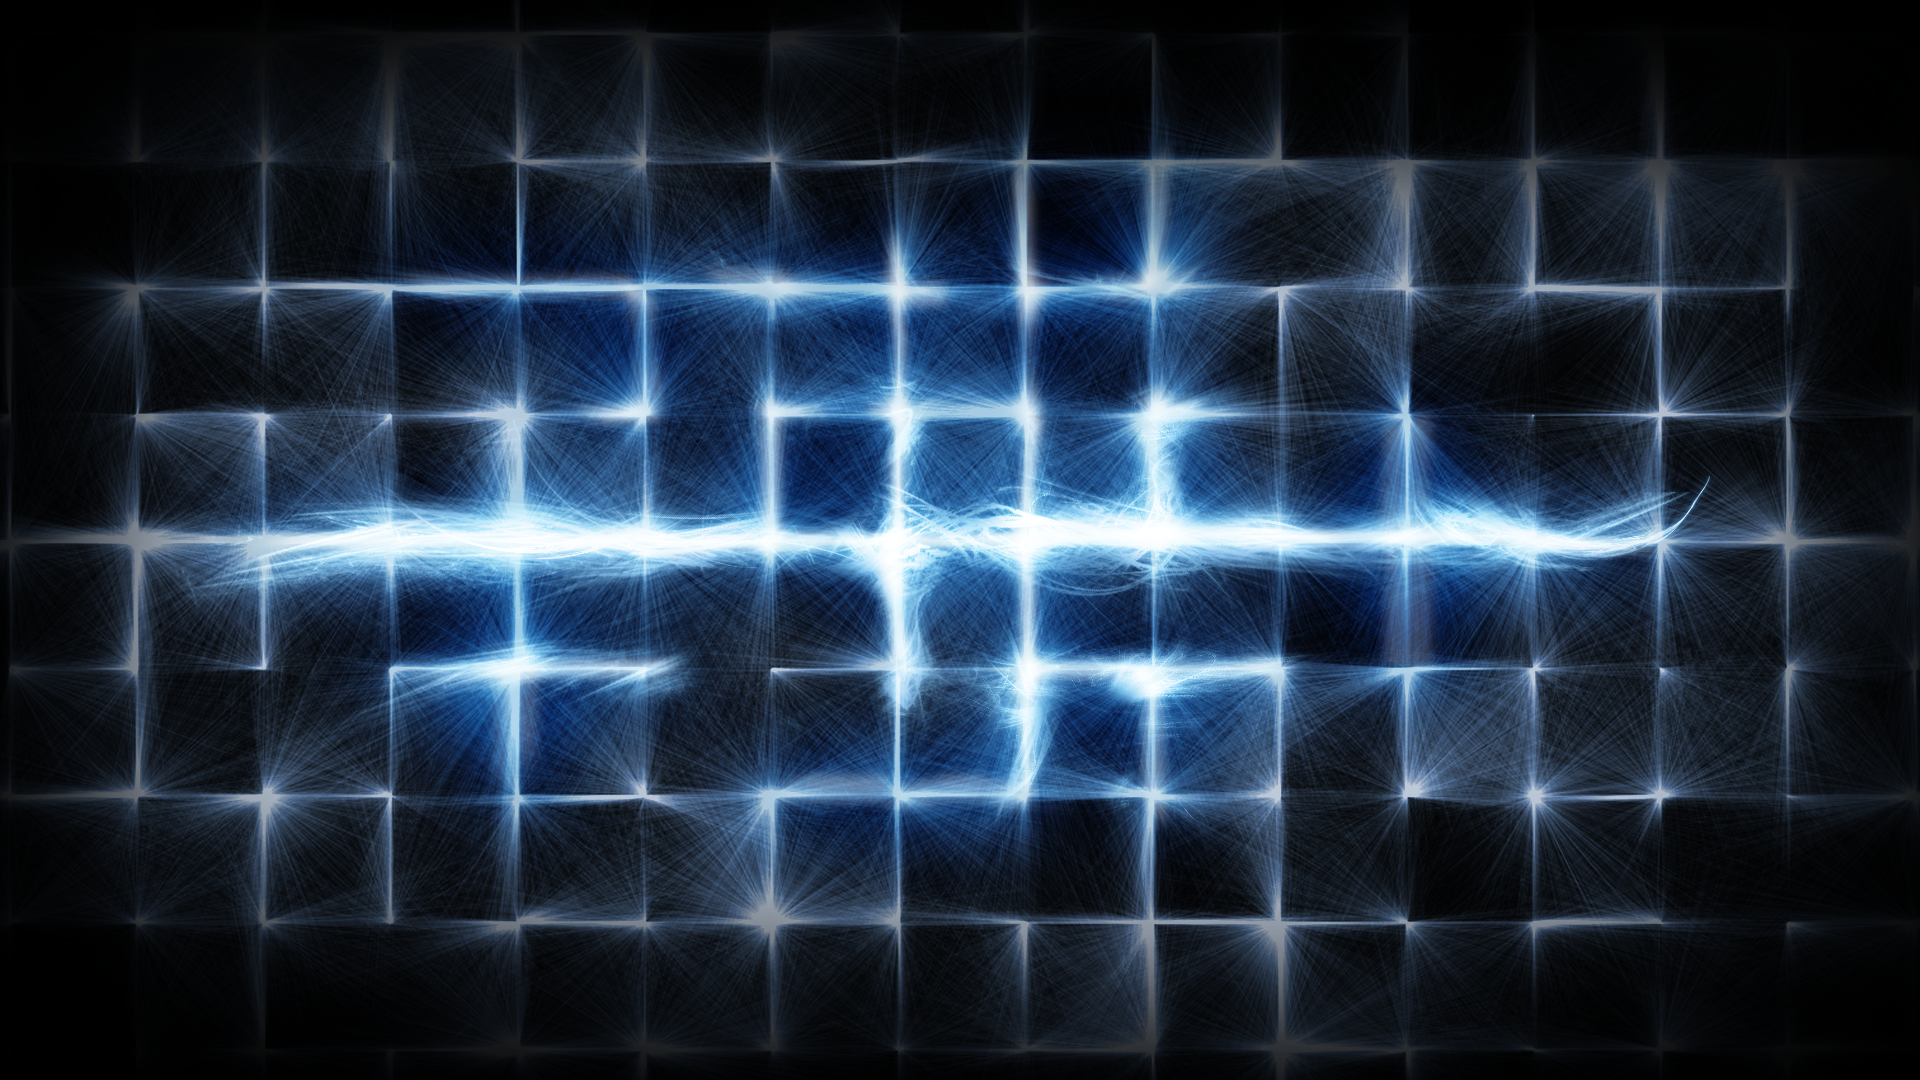 Light Grid Full HD Wallpaper And Background Image